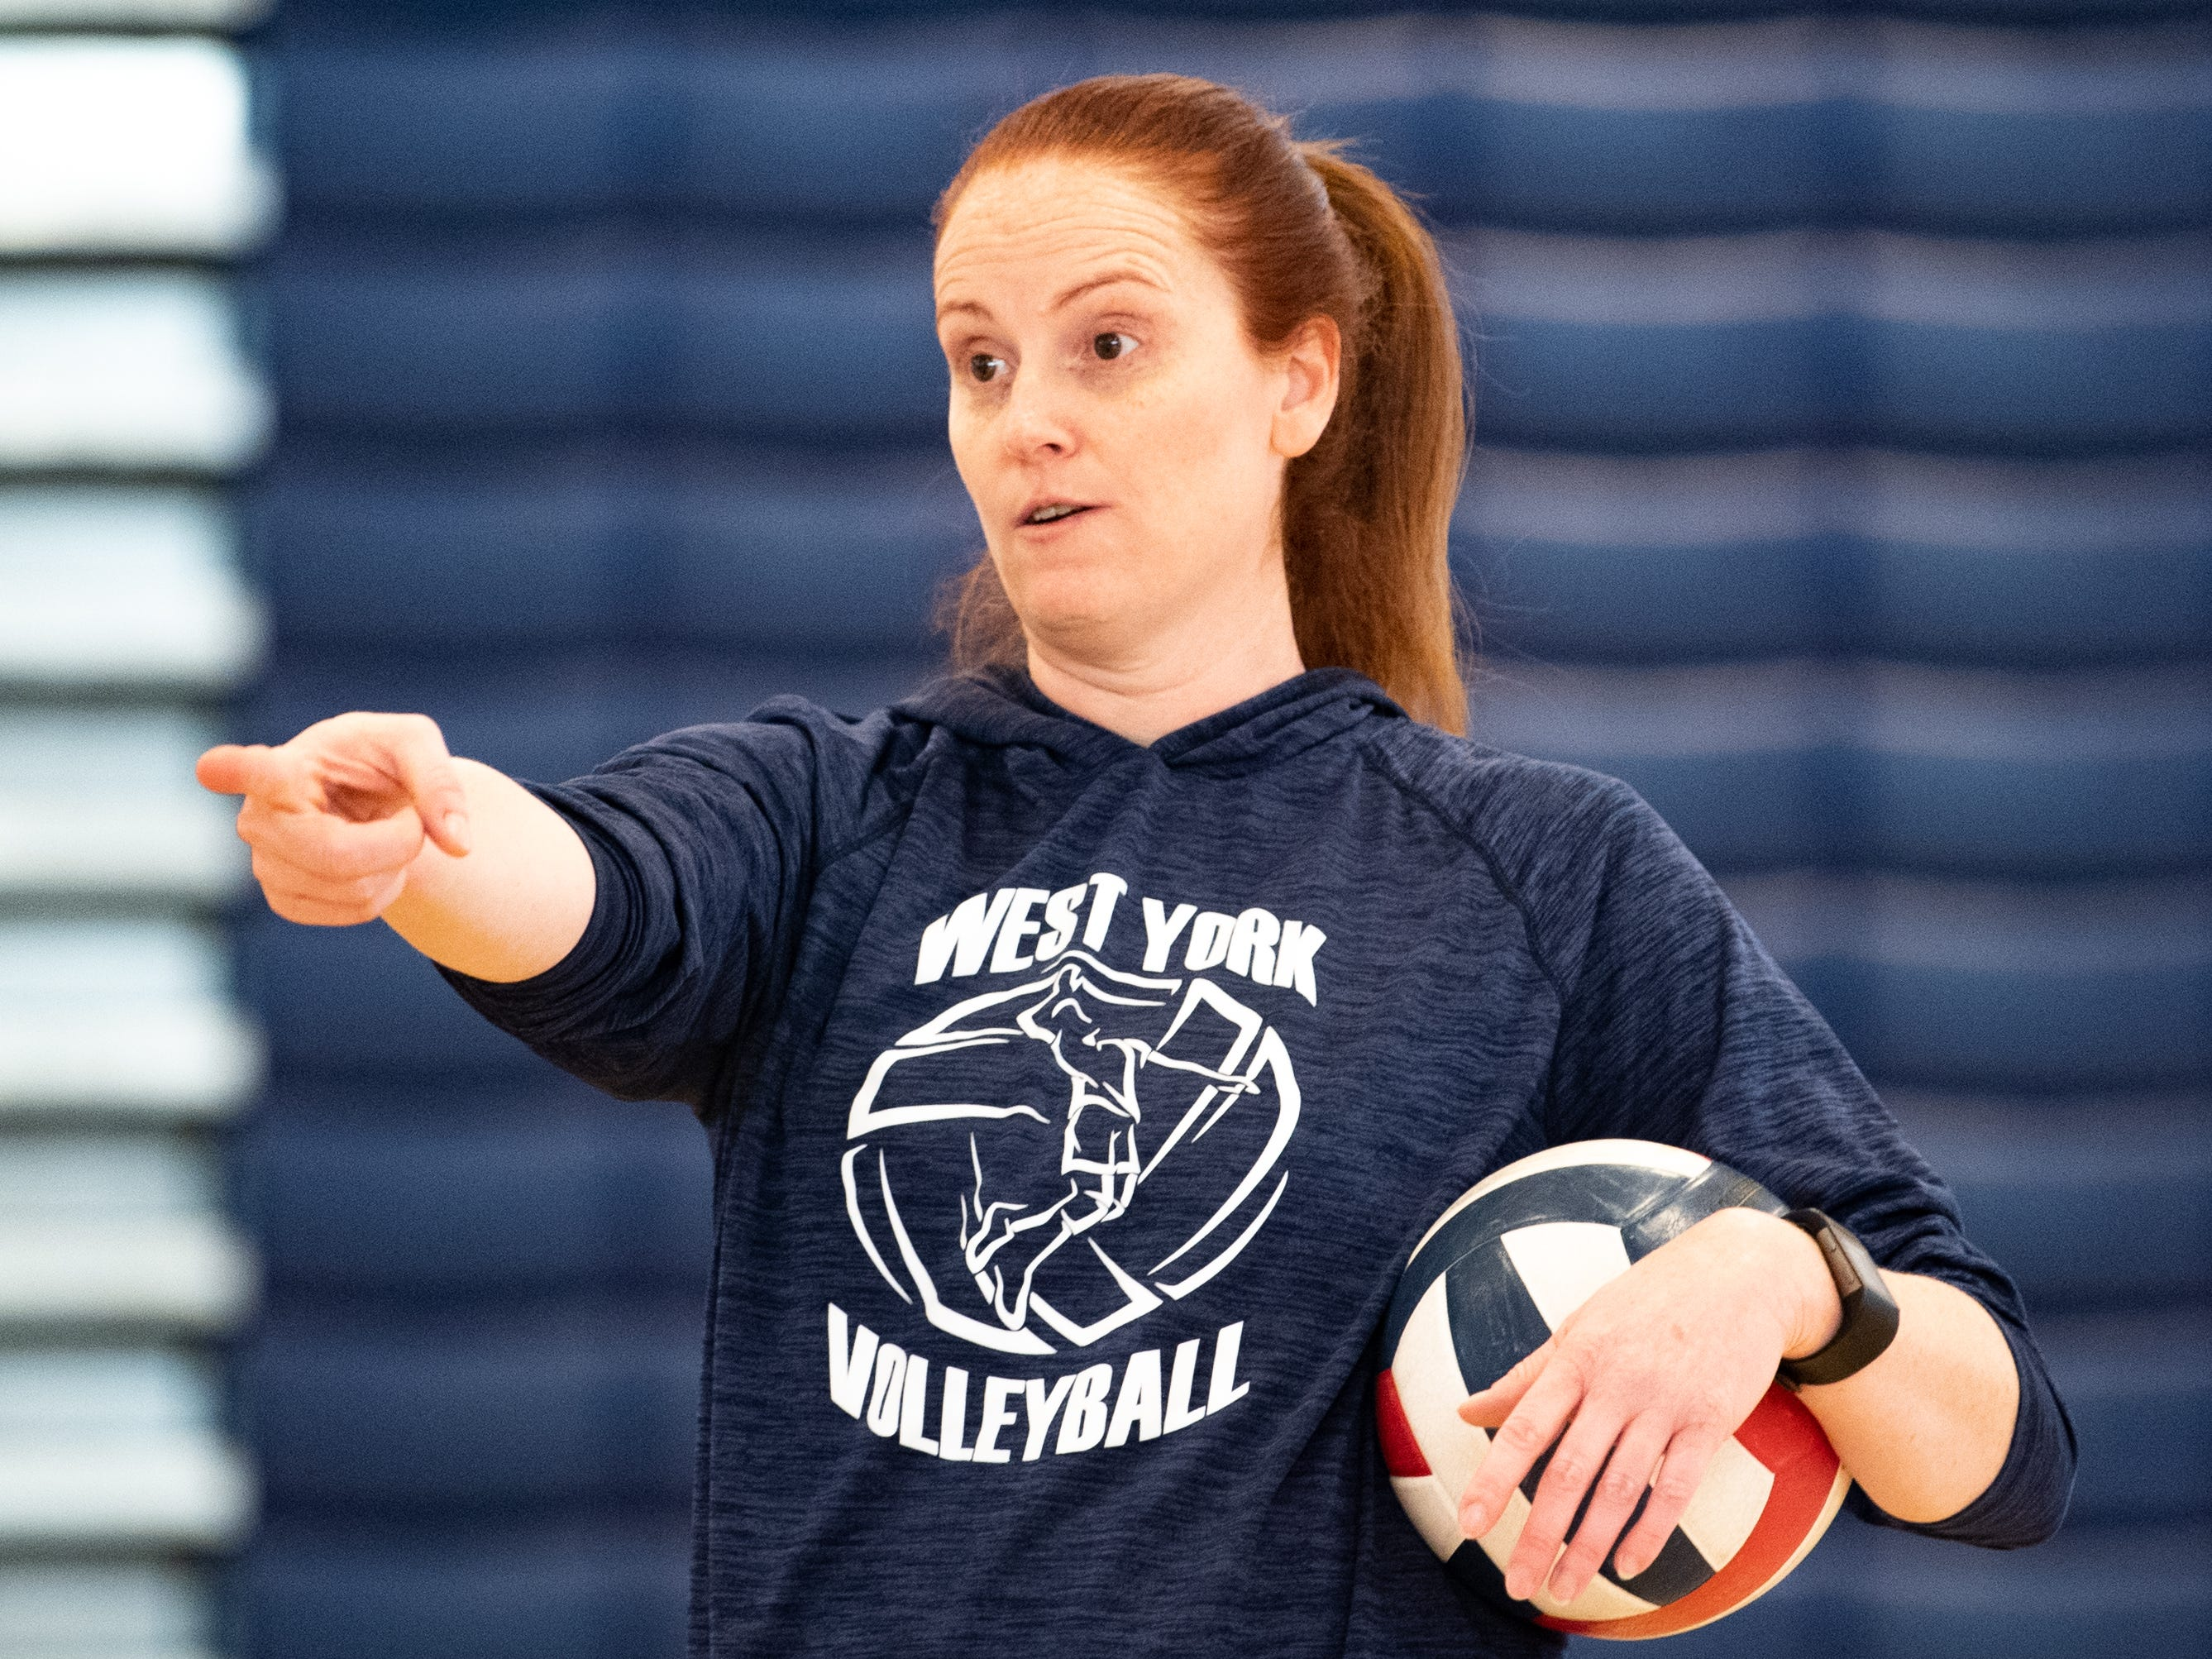 West York's boys' volleyball head coach encourages her team during practice, March 5, 2019.